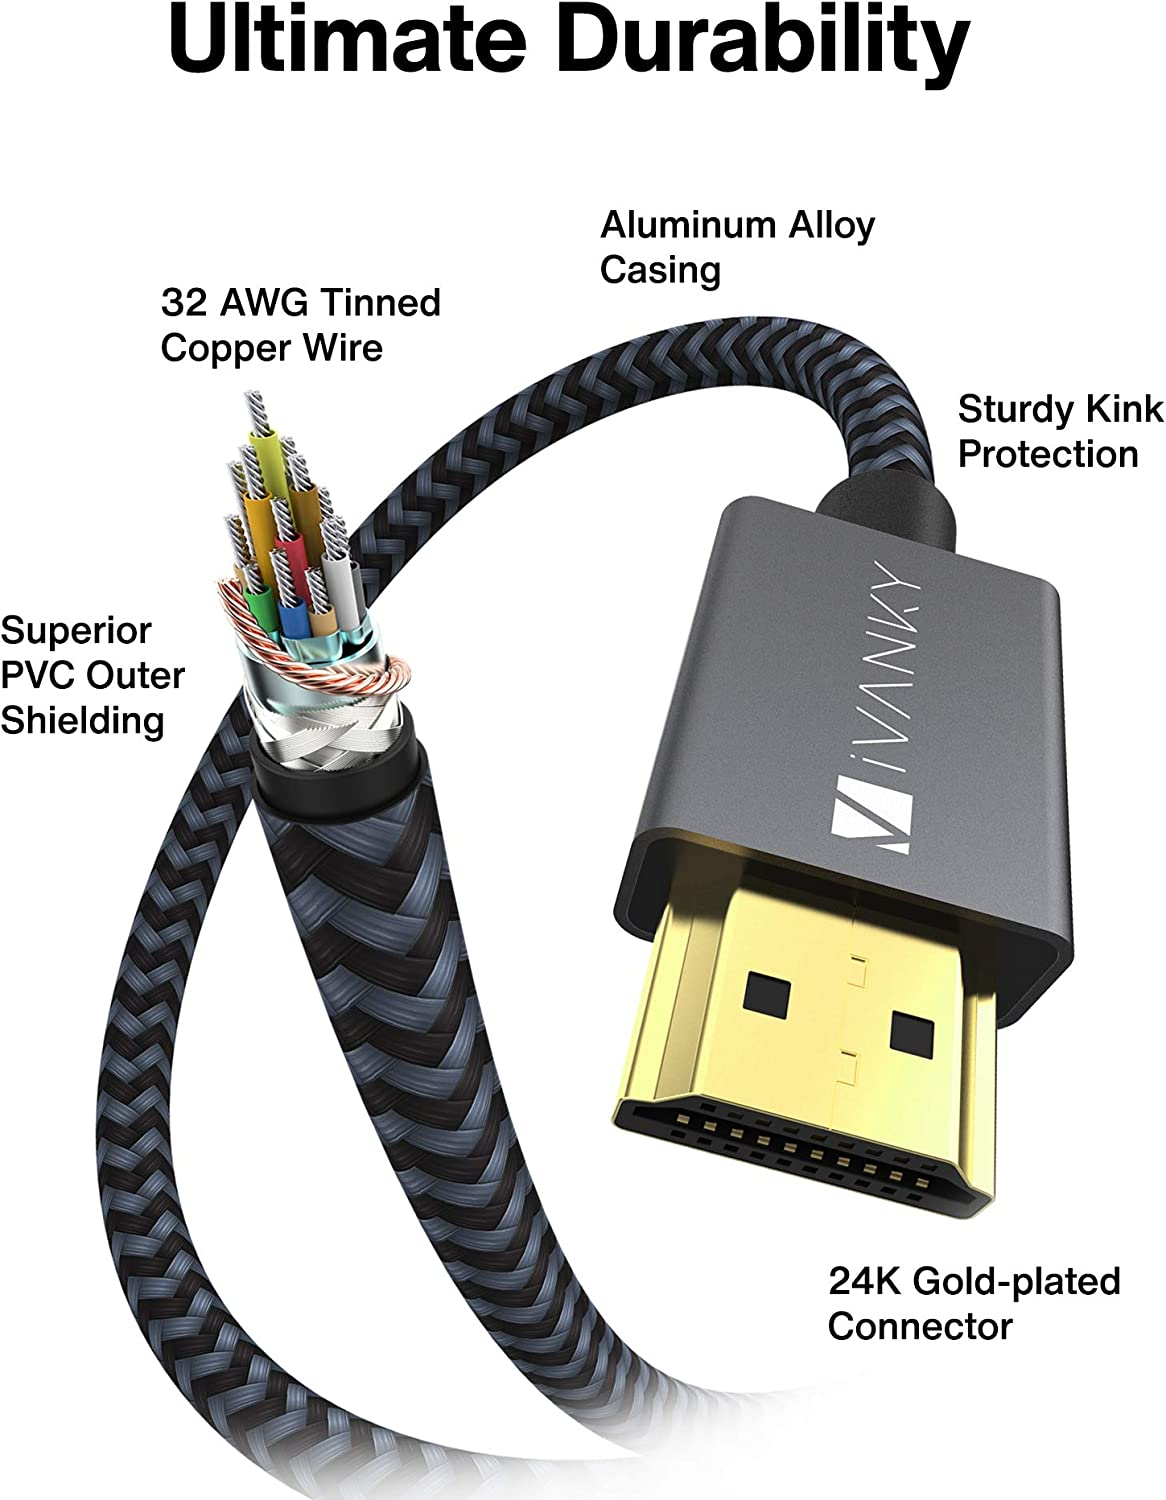 HDMI Cable 4K 10ft, iVANKY 18Gbps High Speed HDMI 2.0 Cable, 4K HDR, HDCP 2.2/1.4, 3D, 2160P, 1080P, Ethernet - Braided HDMI Cord 32AWG, Audio Return(ARC) Compatible UHD TV, Blu-ray, PS4/3, Monitor: Electronics